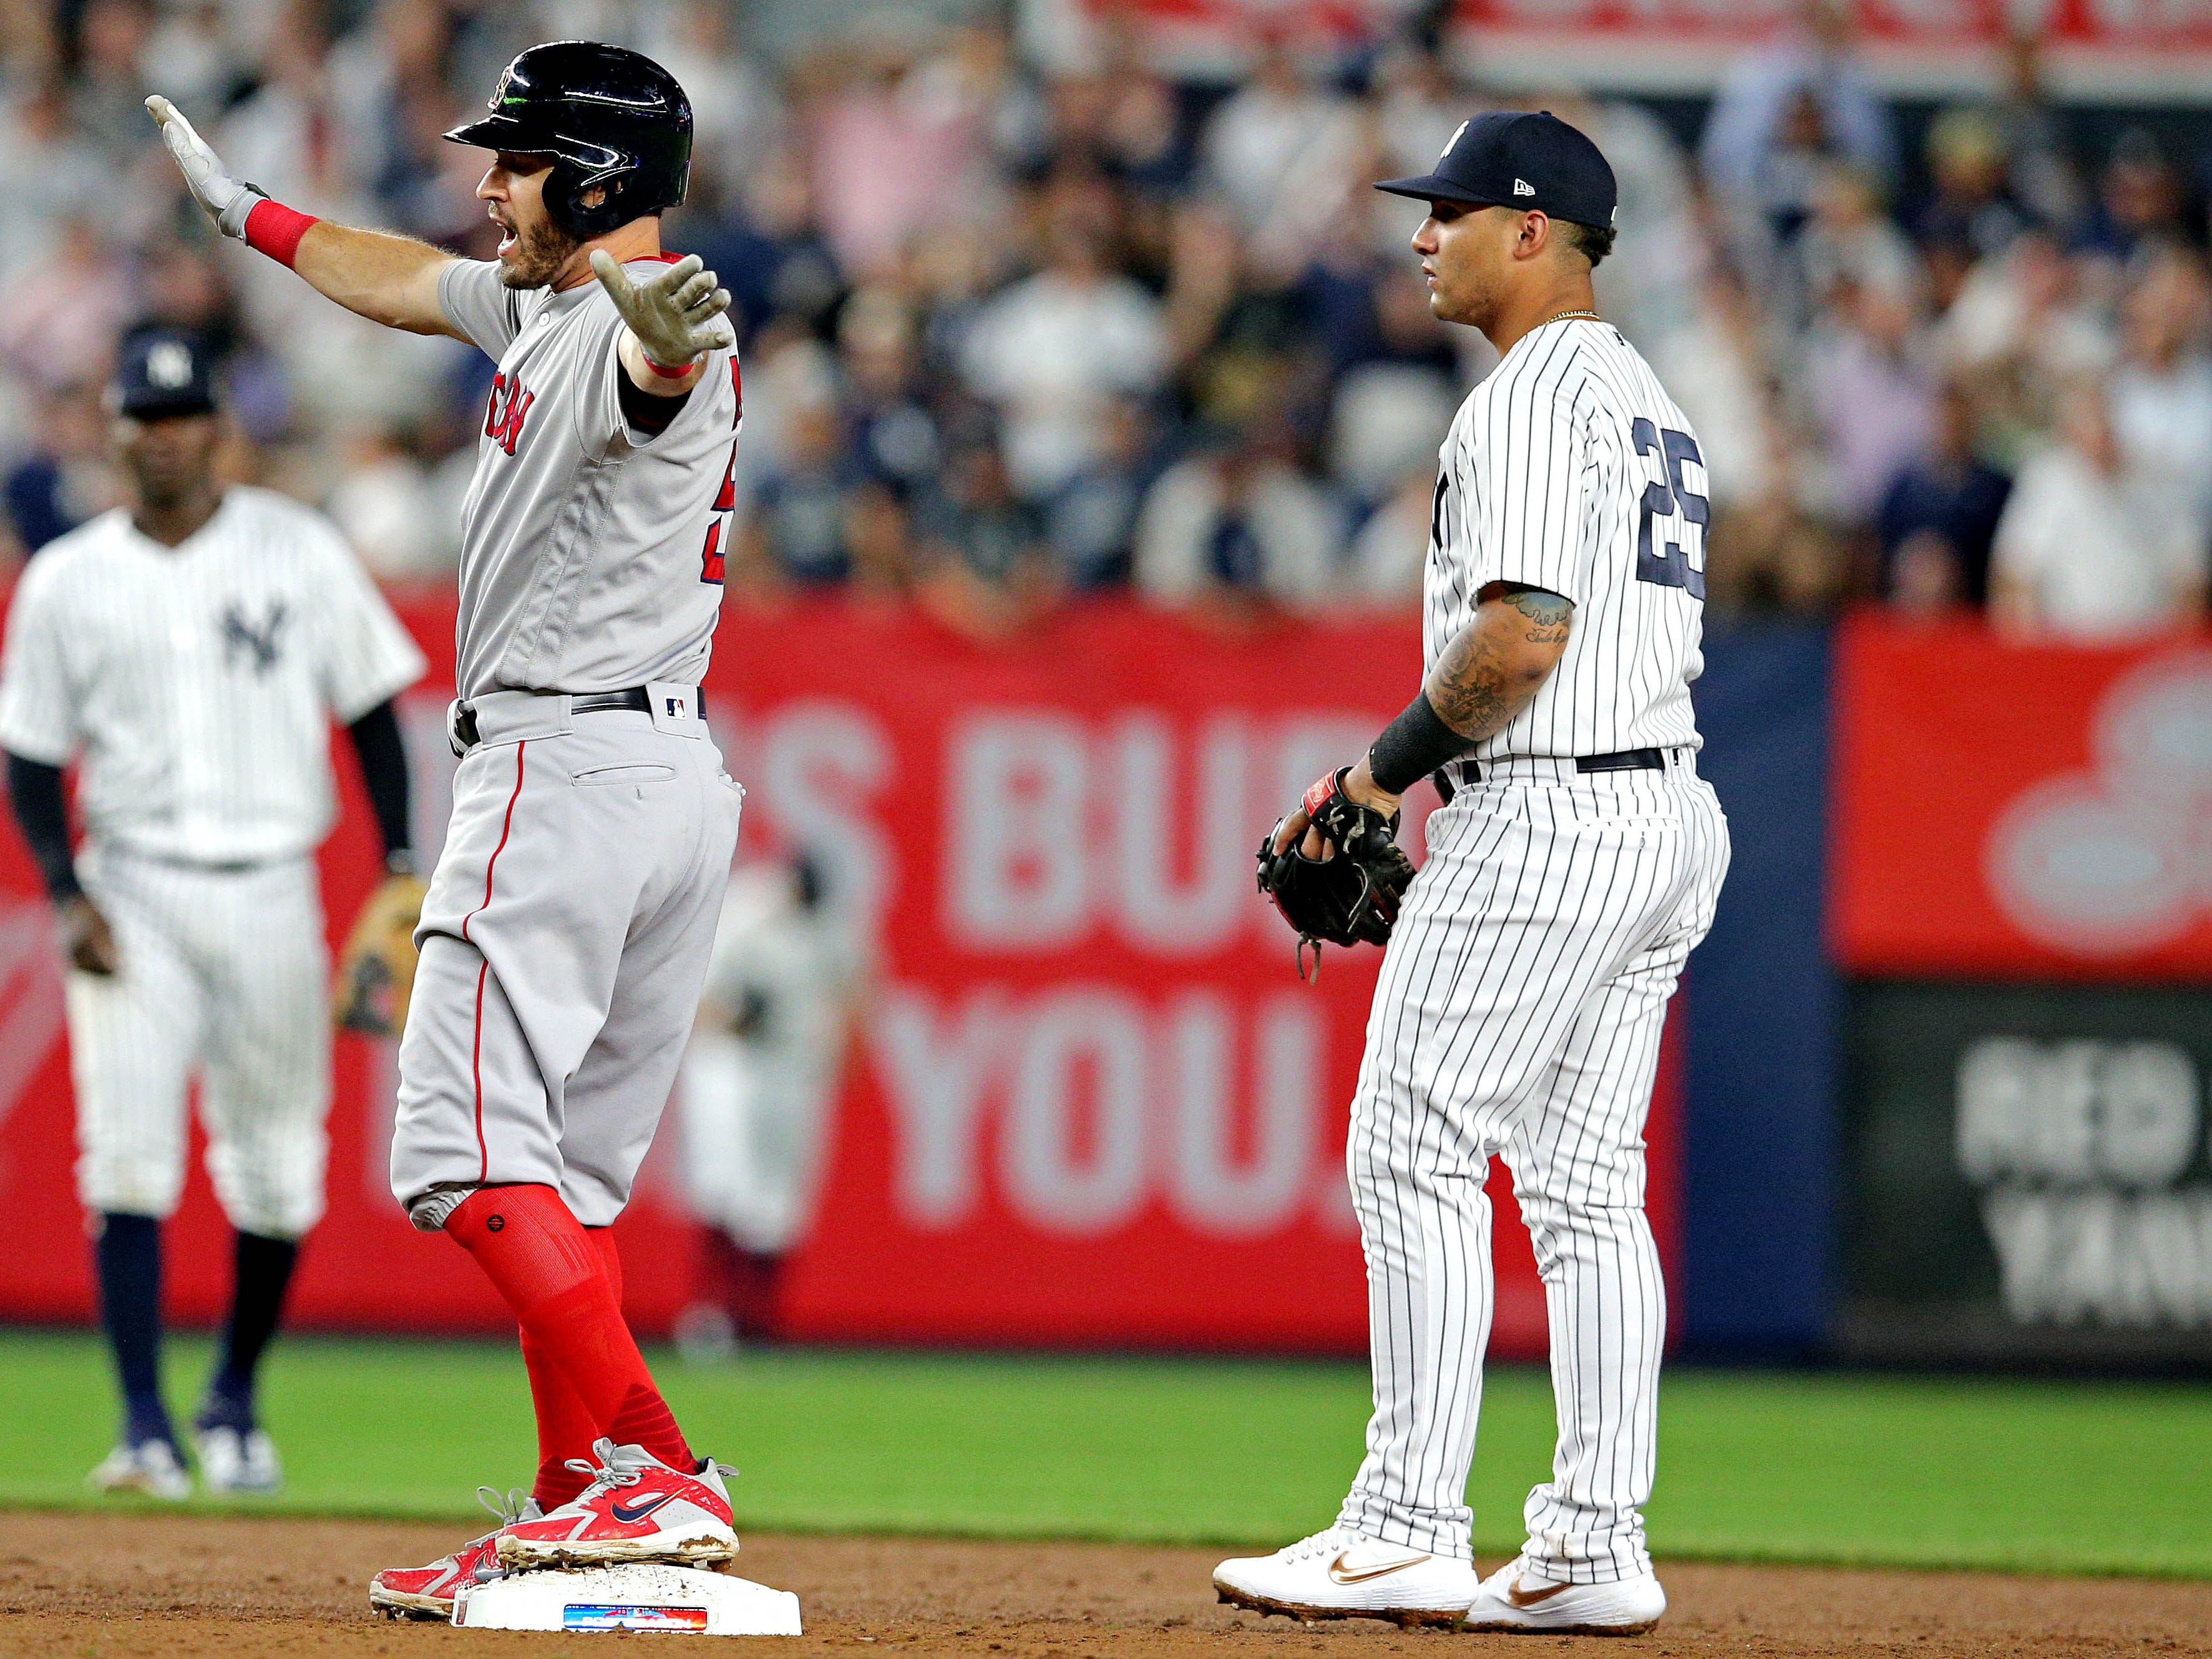 ALDS Game 4: Red Sox second baseman Ian Kinsler hits an RBI double in the third inning.